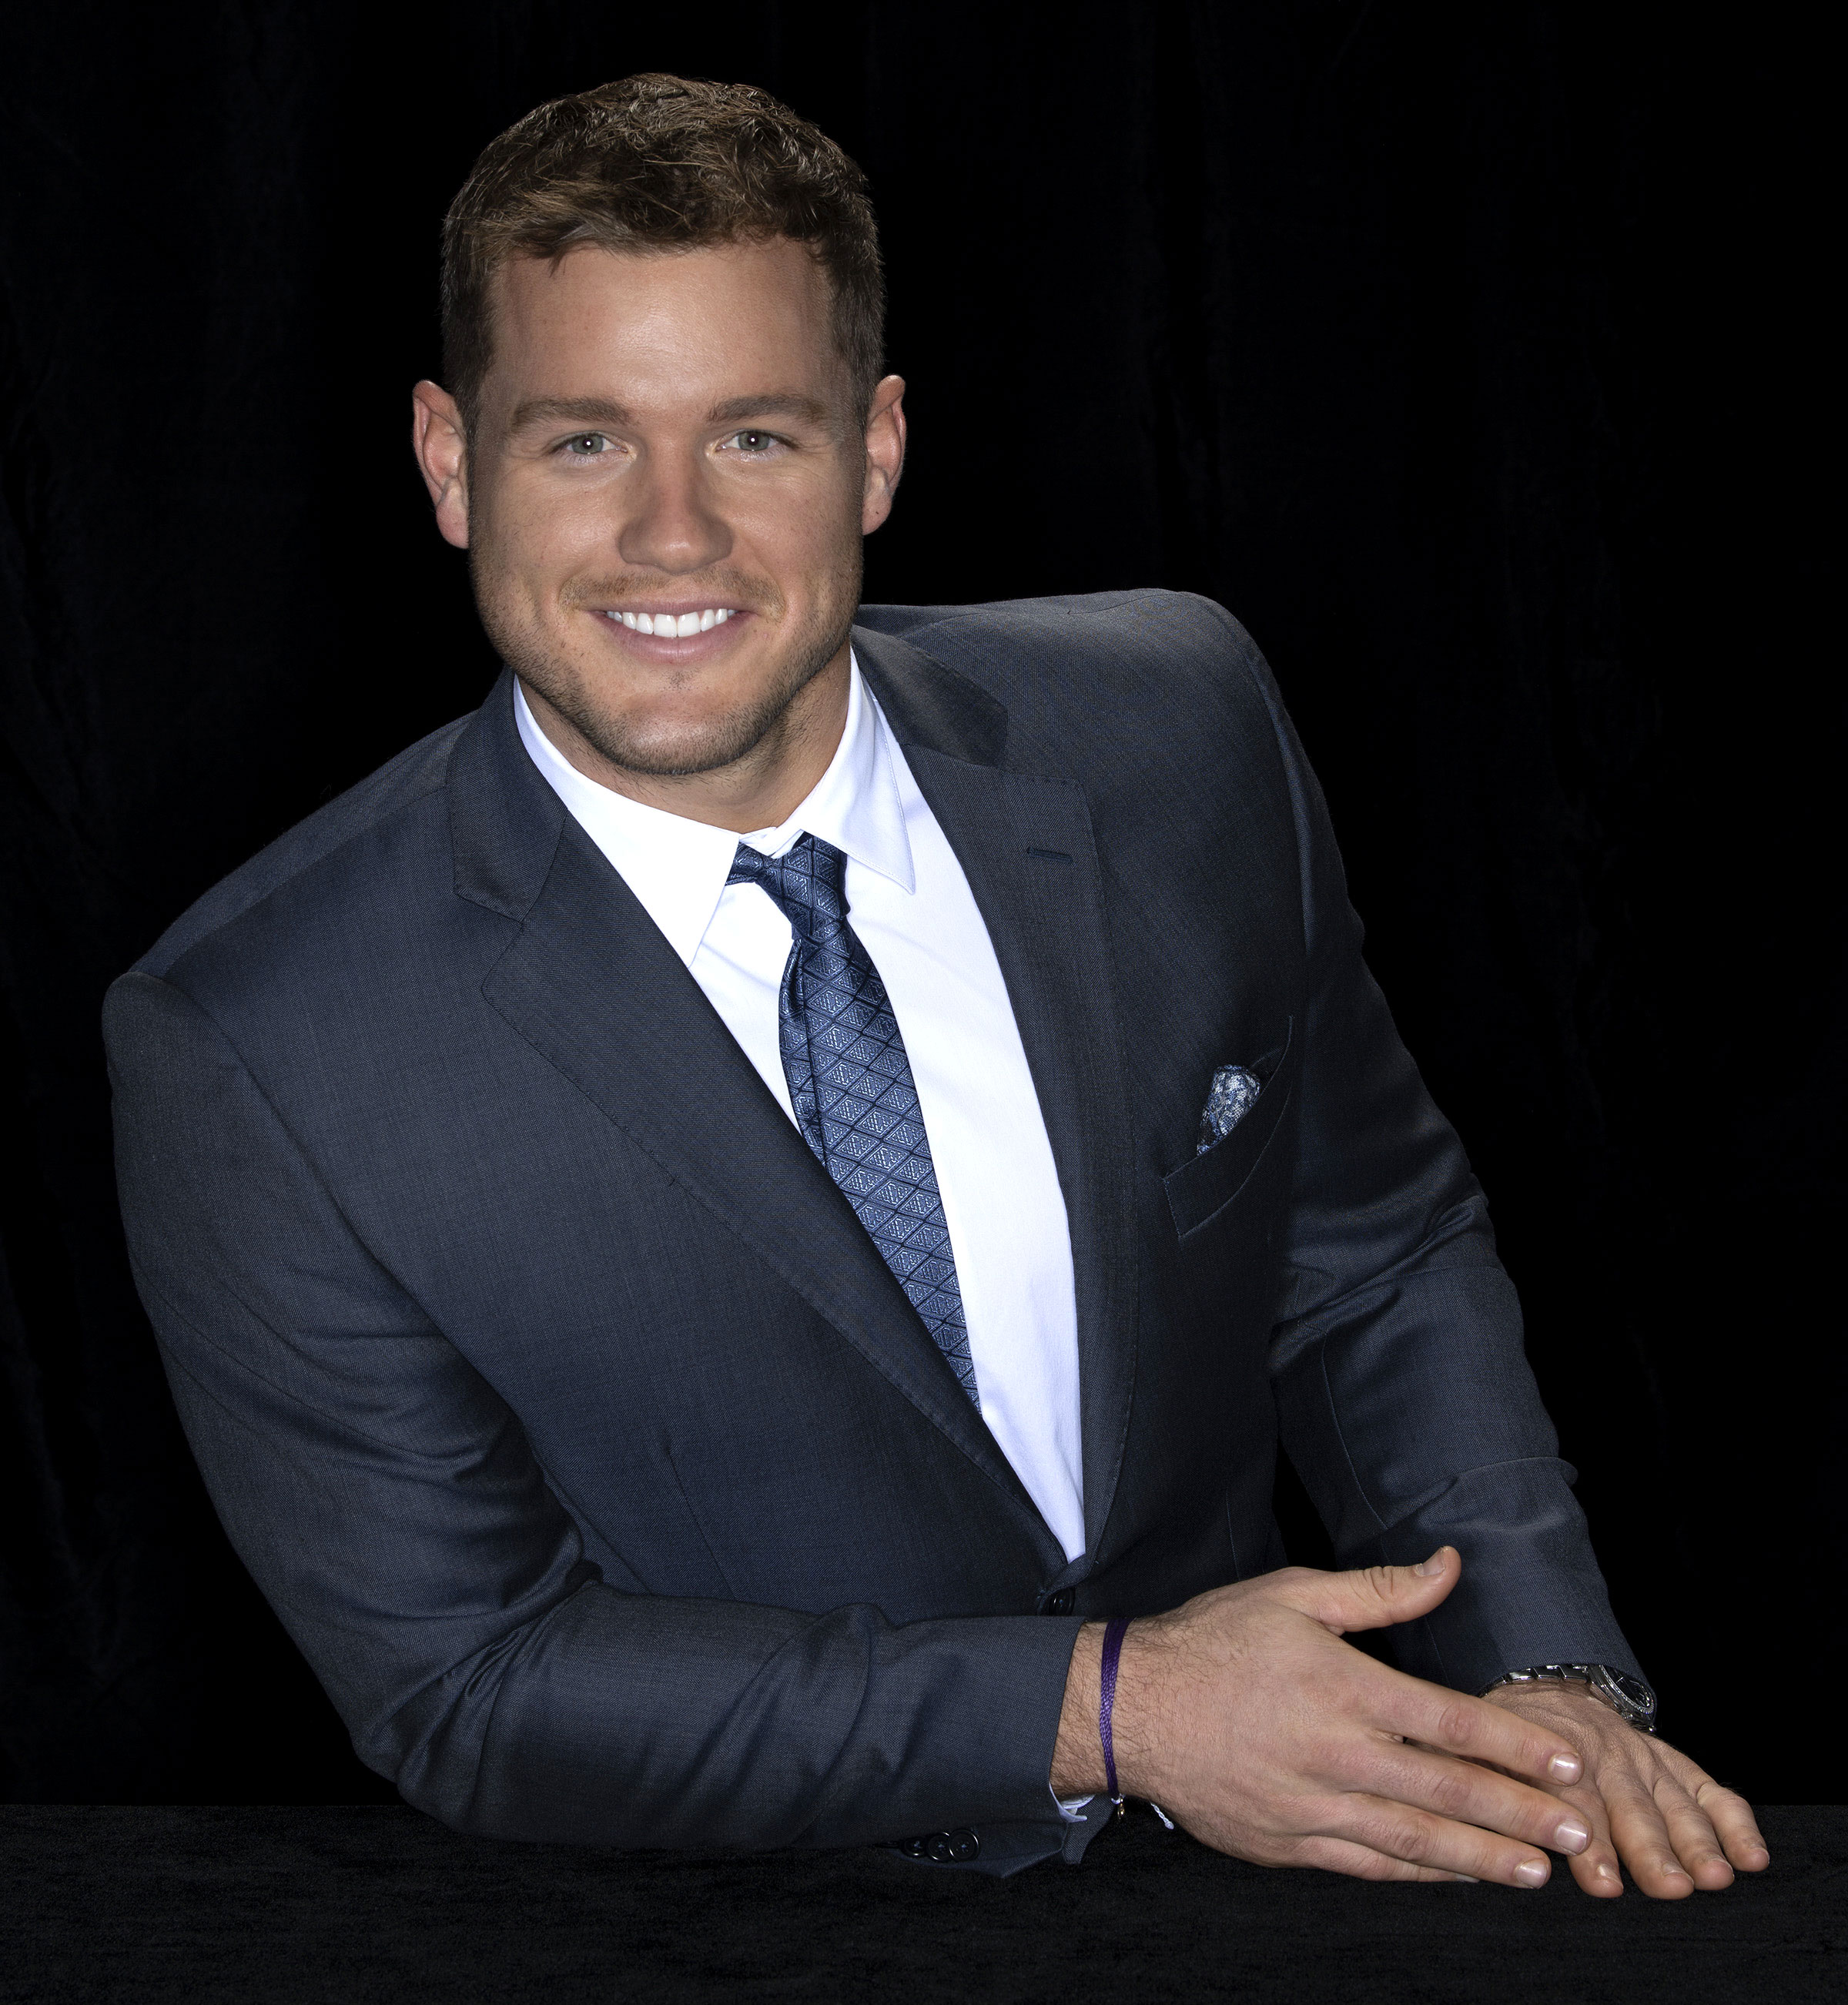 Colton Underwood Reenacted Fence-Jumping Scene Busy Tonight - Colton Underwood at ABC's Winter Press Tour on February 9, 2019 in Los Angeles, California.